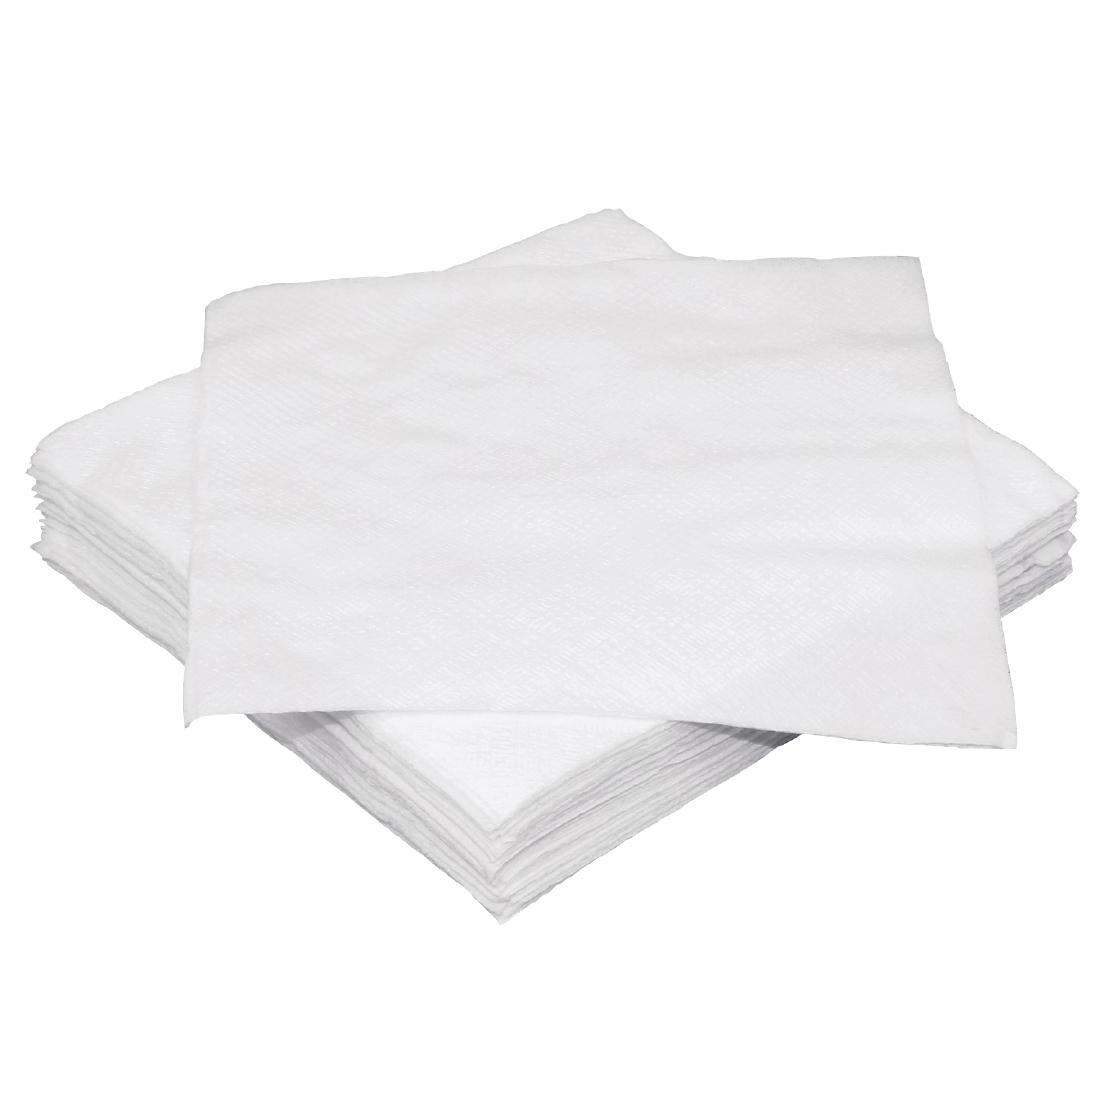 Serviettes cocktail 1 pli Fiesta blanches 250 x 250mm lot de 2000